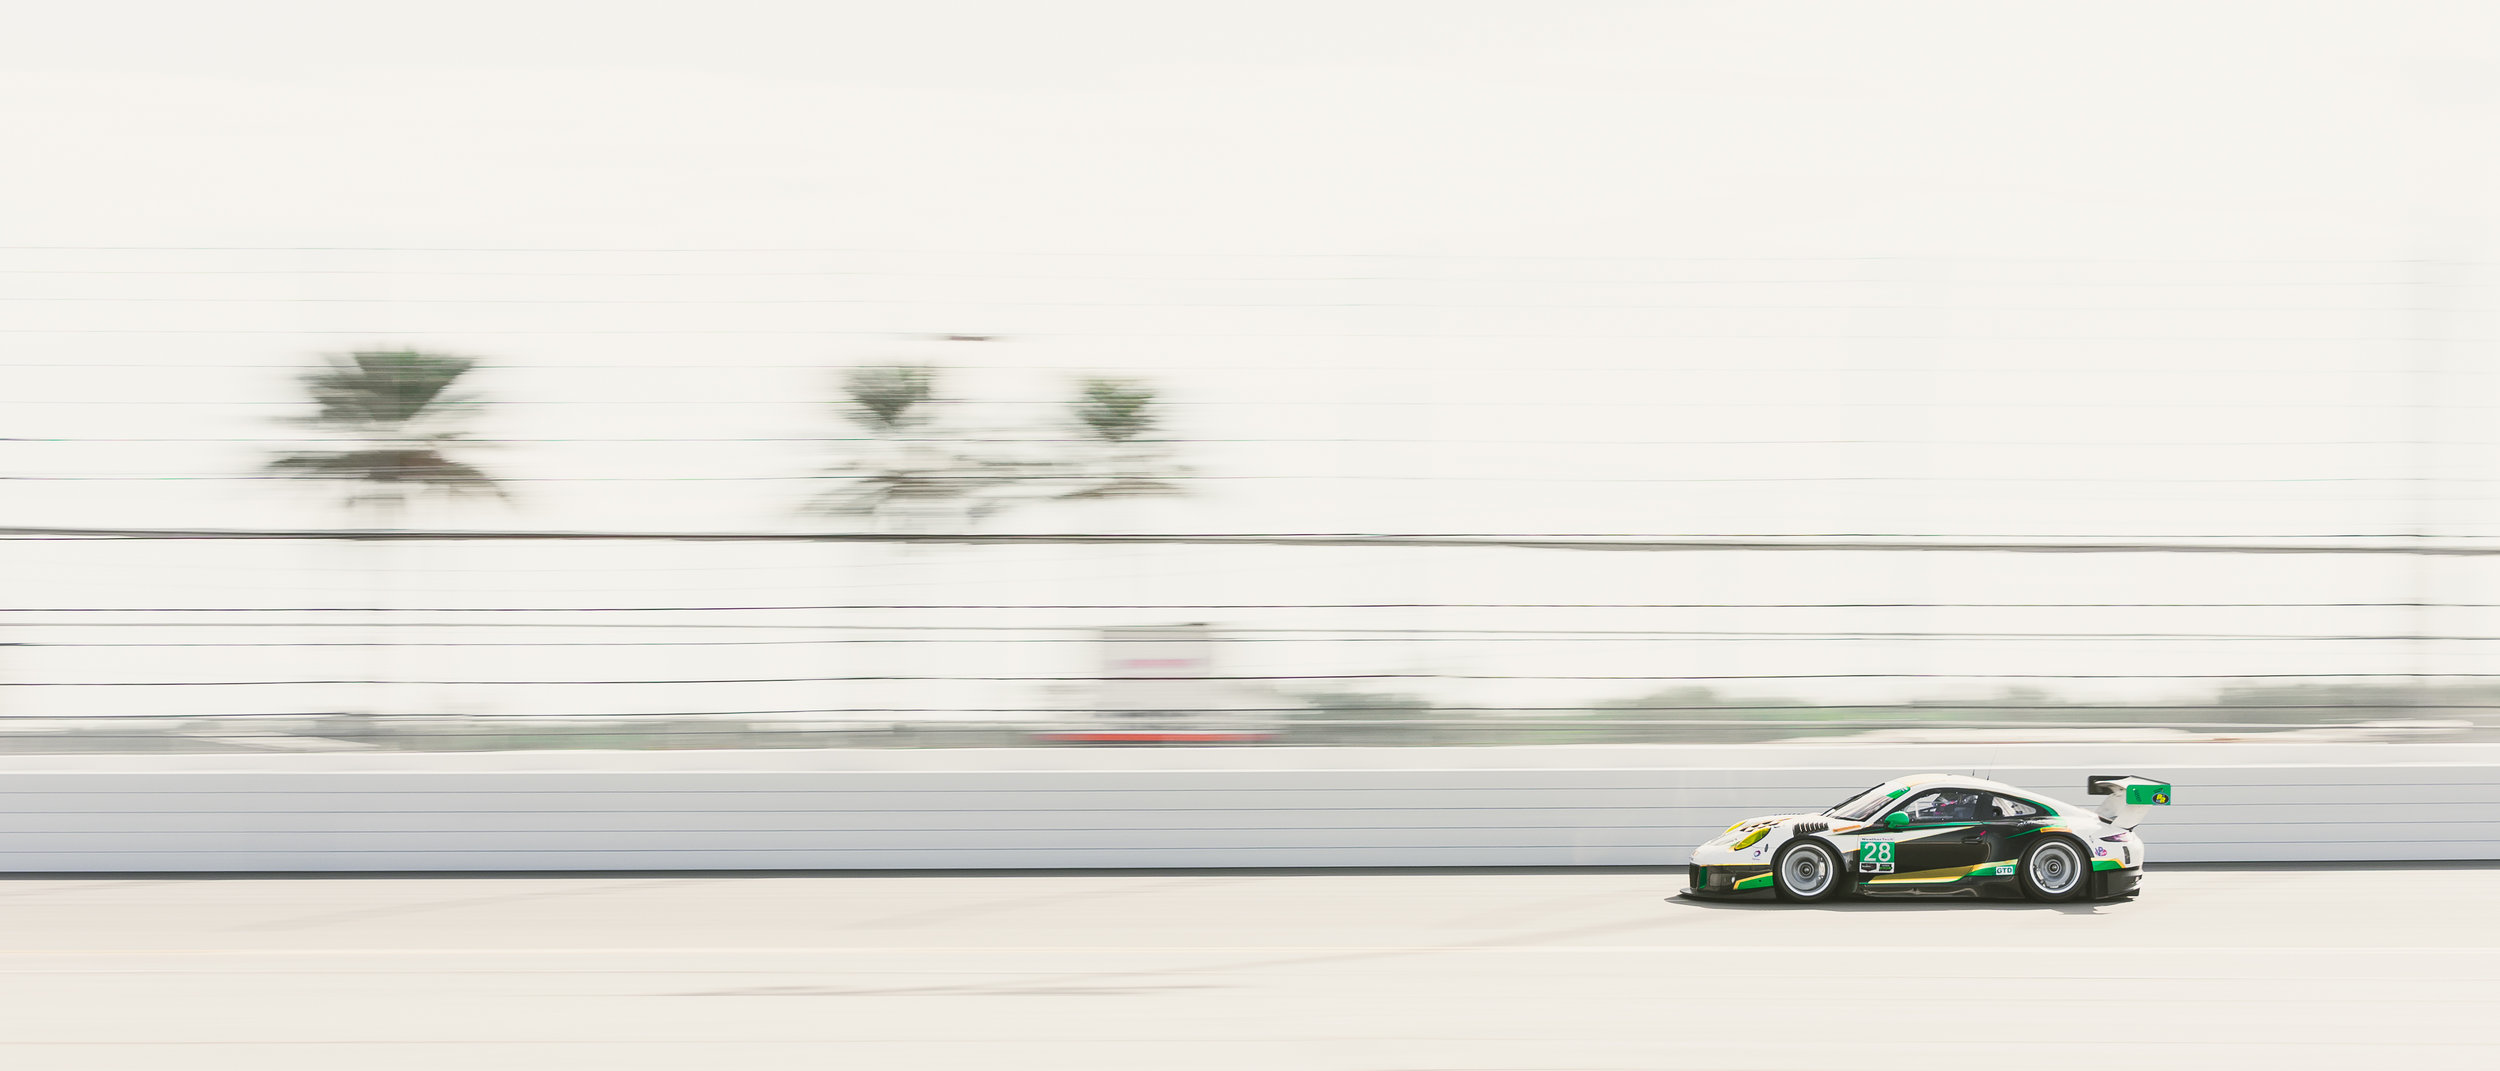 Alegra Motorsports - Daytona test December Day 3-1328.jpg